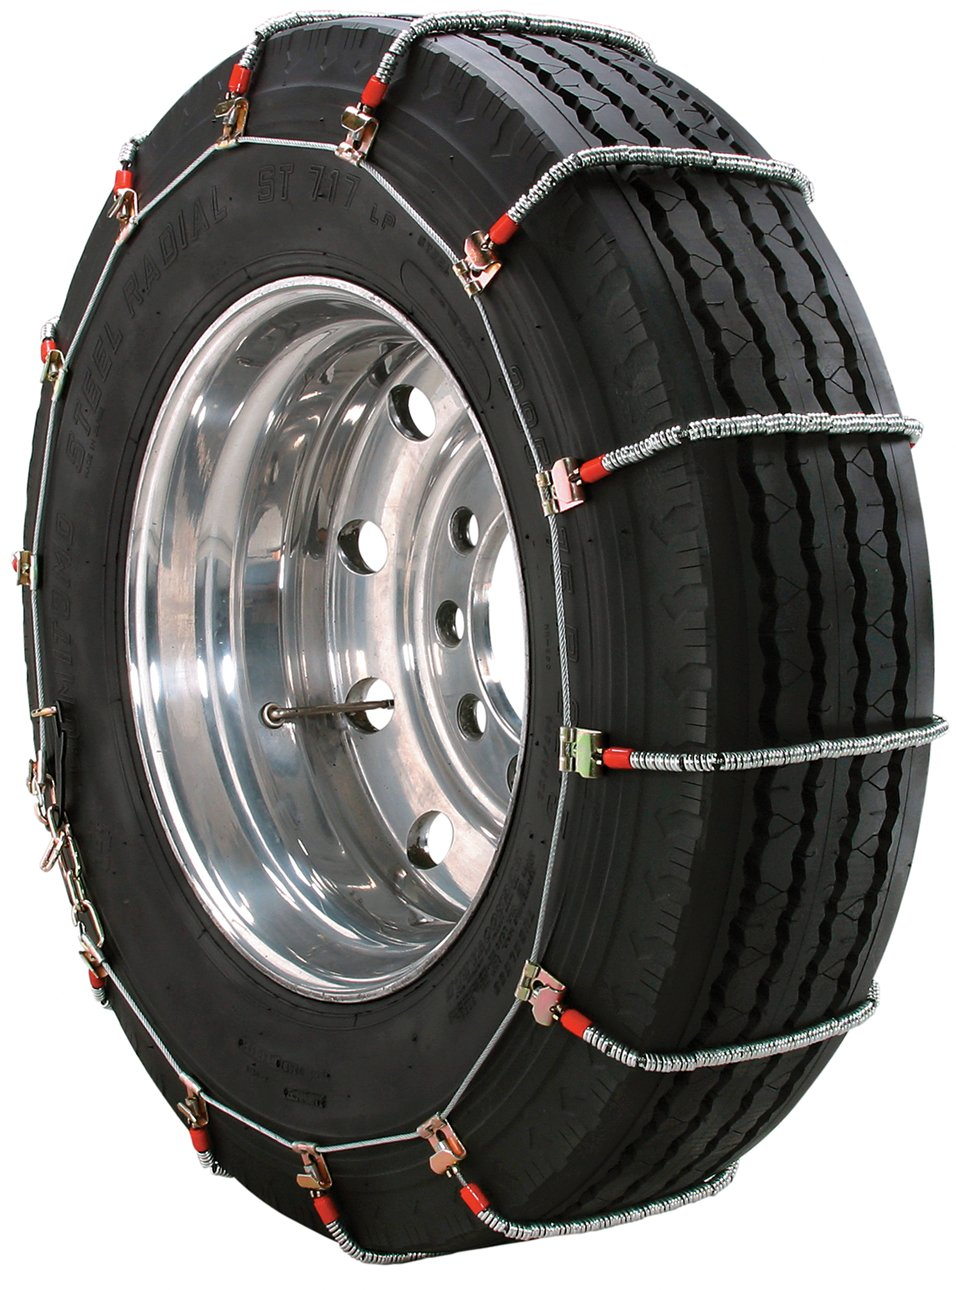 Security Chain Company TA1947 Alloy Radial Heavy Duty Truck Singles Tire Traction Chain - Set of 2